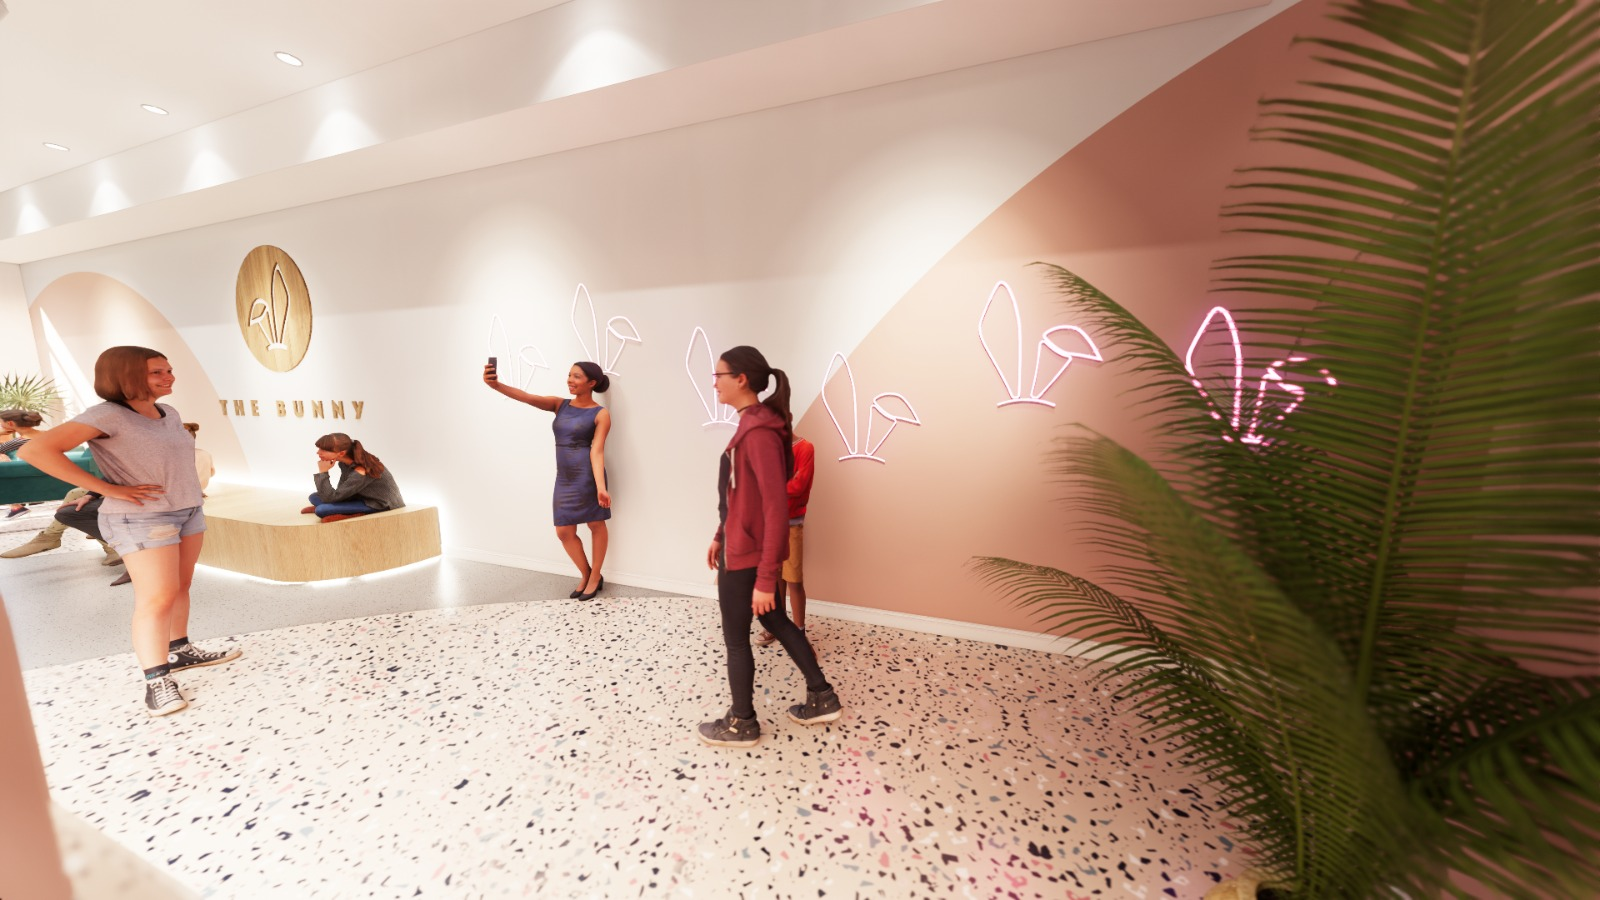 The Bunny Bubble Tea Shop design neon wall marques and bench seating